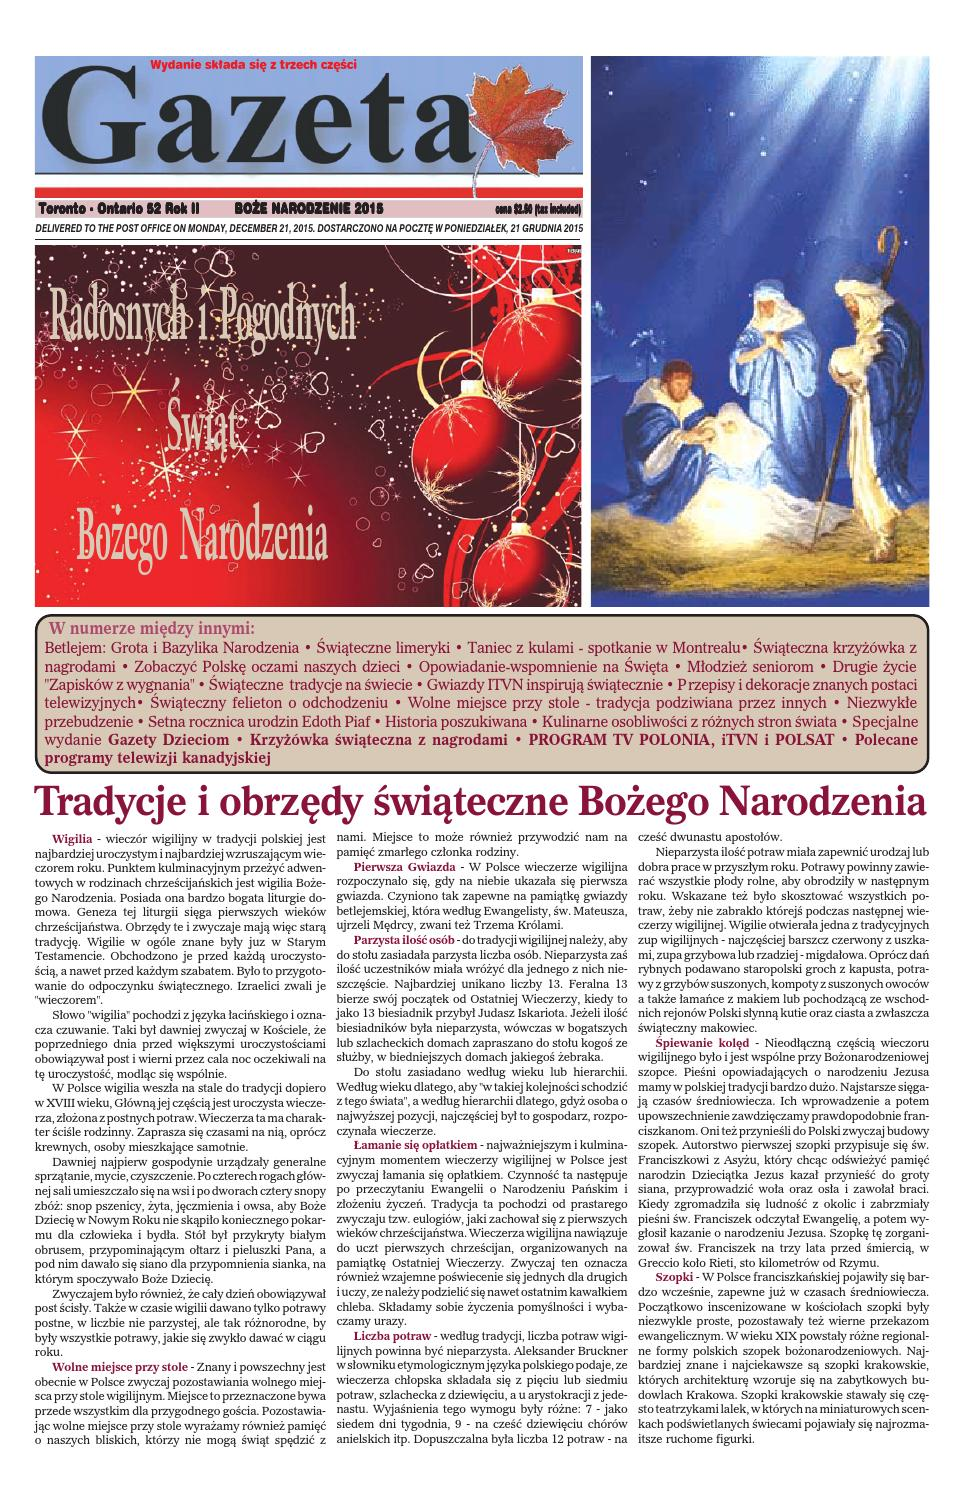 Gazeta 2015 Xmas By Gazetagazetacom Issuu